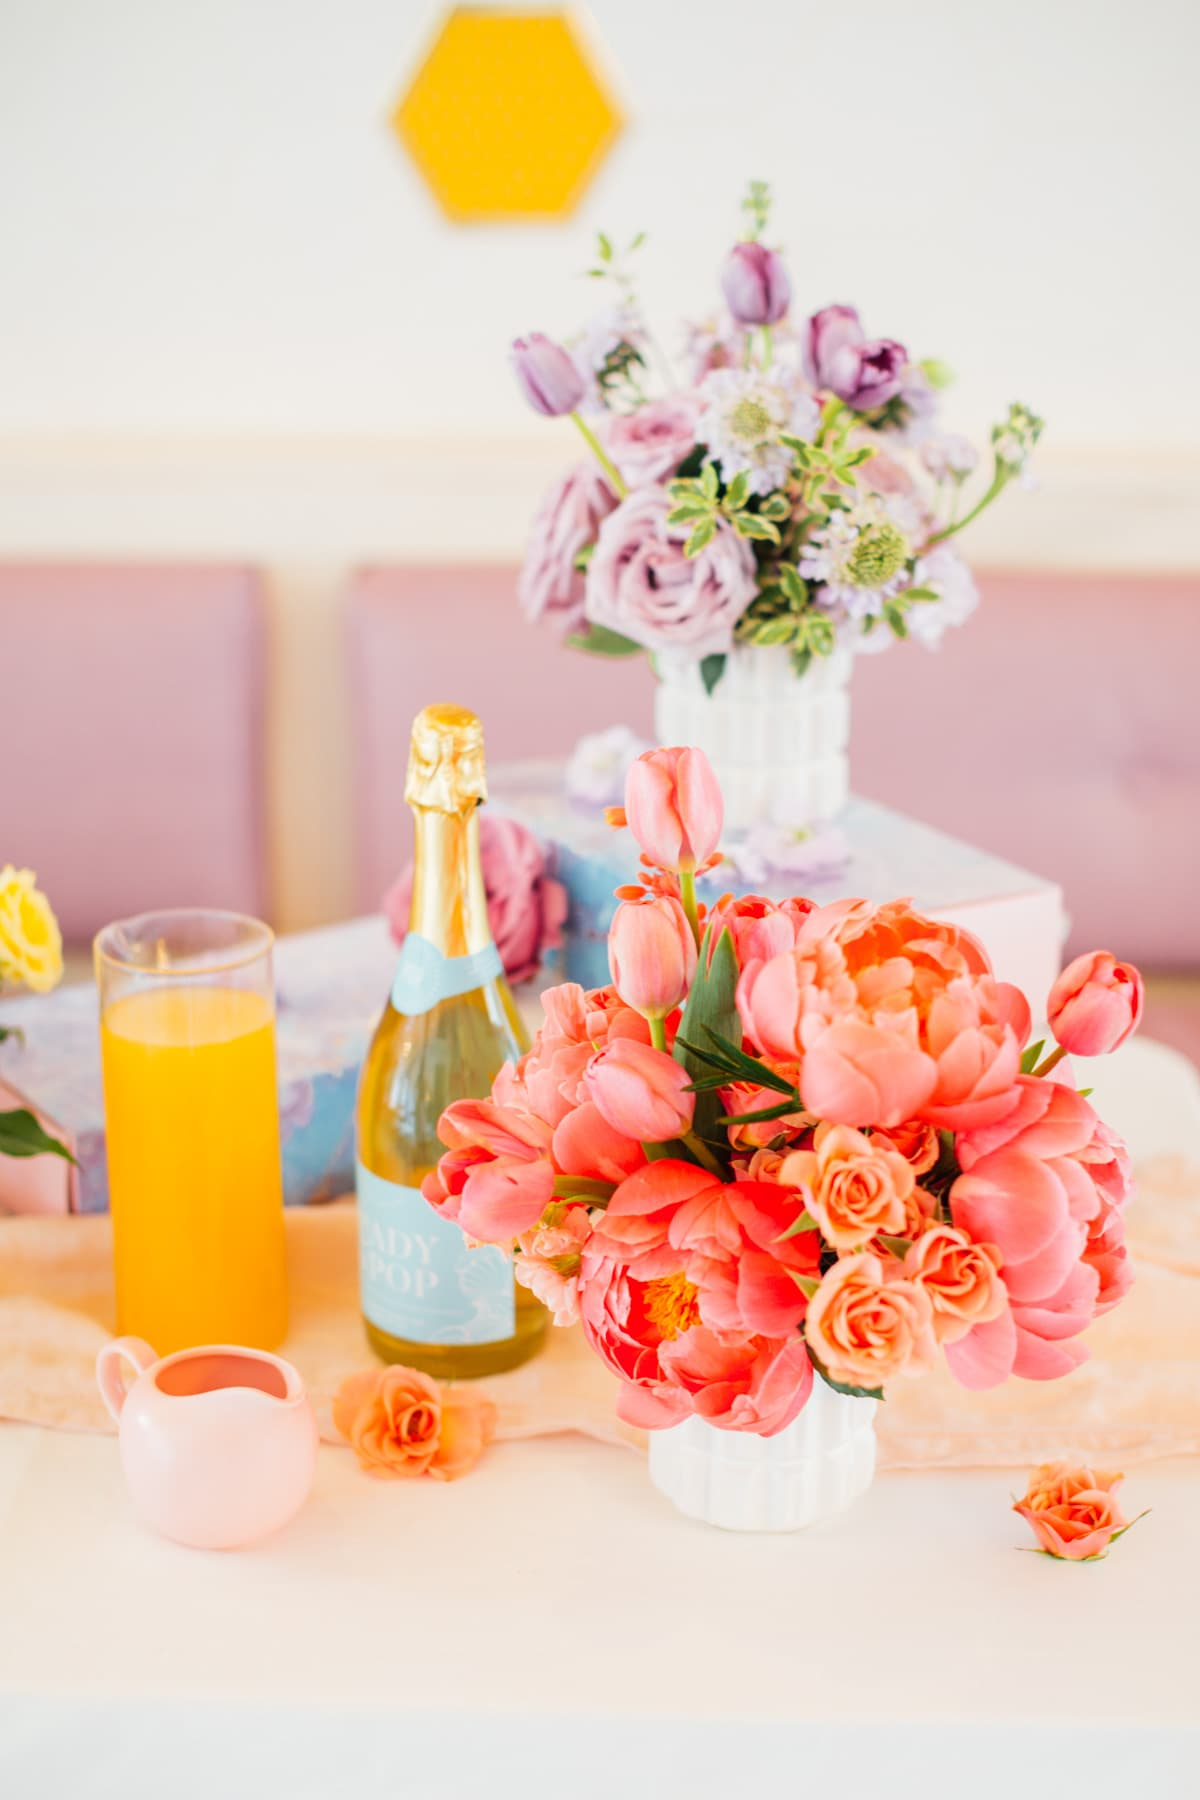 Gorgeous blooms - A Perfectly Pastel Easter Table Idea by top Houston lifestyle blogger Ashley Rose of Sugar & Cloth #diy #tablescape #ideas #easter #pastel #party #decorations #brunch #bridalshower #bridal #shower #baby